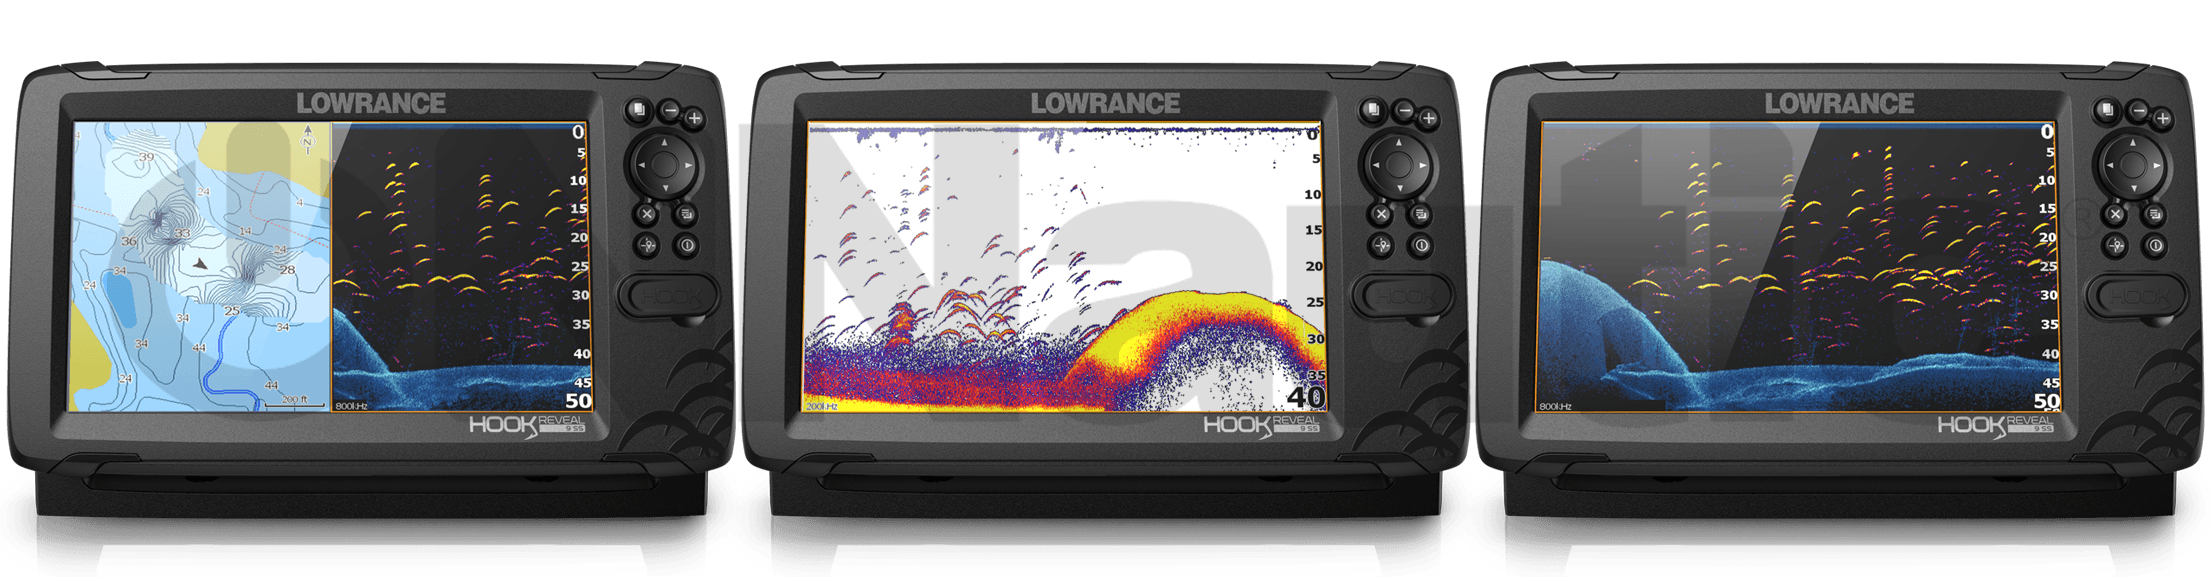 Lowrance Hook Reveal 9 HDI 50-200